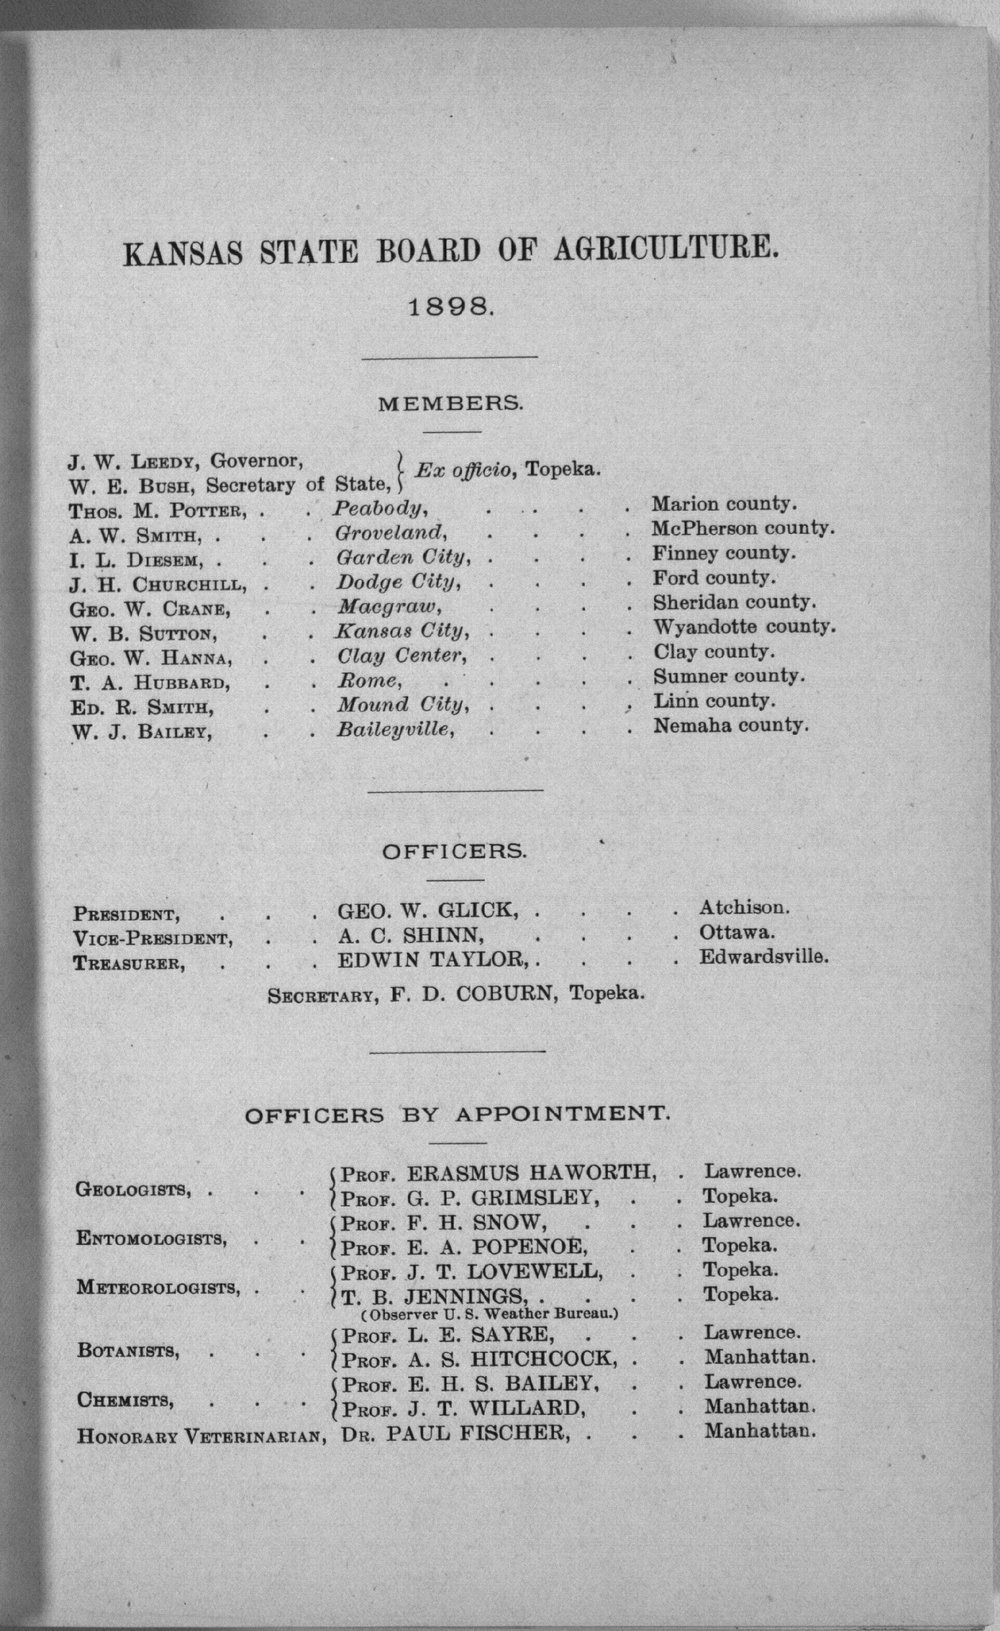 Eleventh biennial report of the Kansas State Board of Agriculture, 1897-98 - Officers and Members